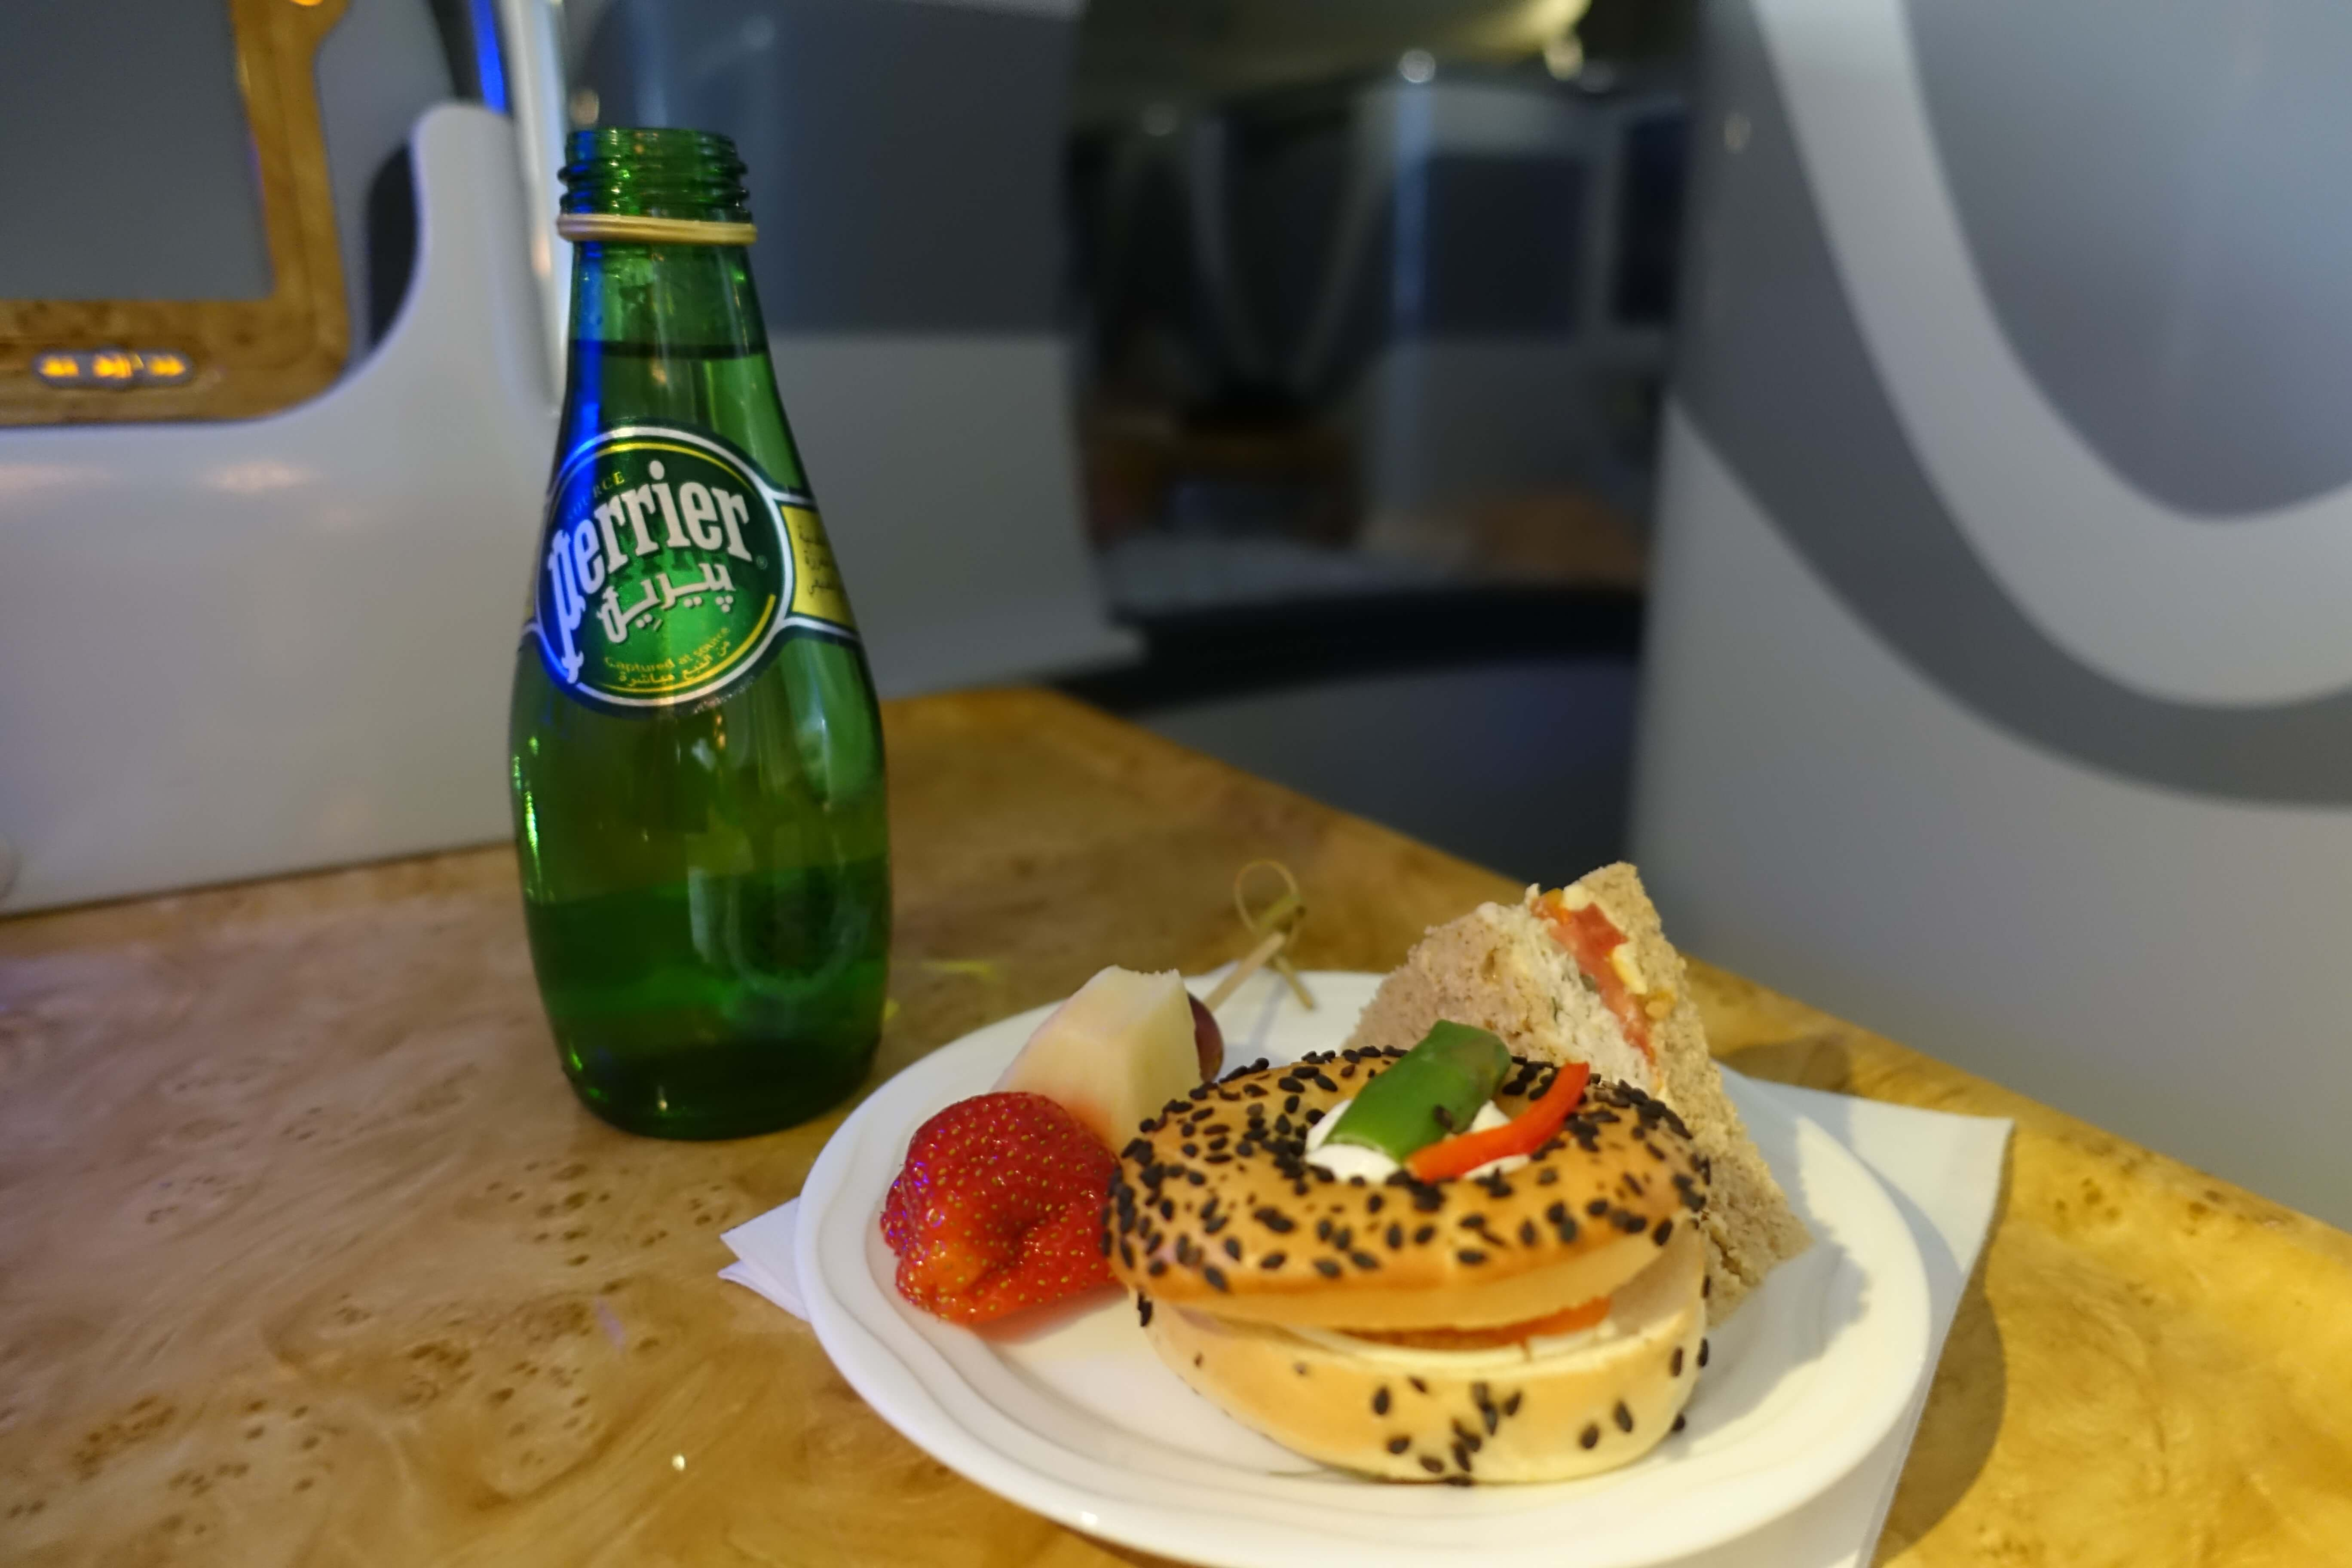 plate of bagel, sandwich and bottle of Perrier